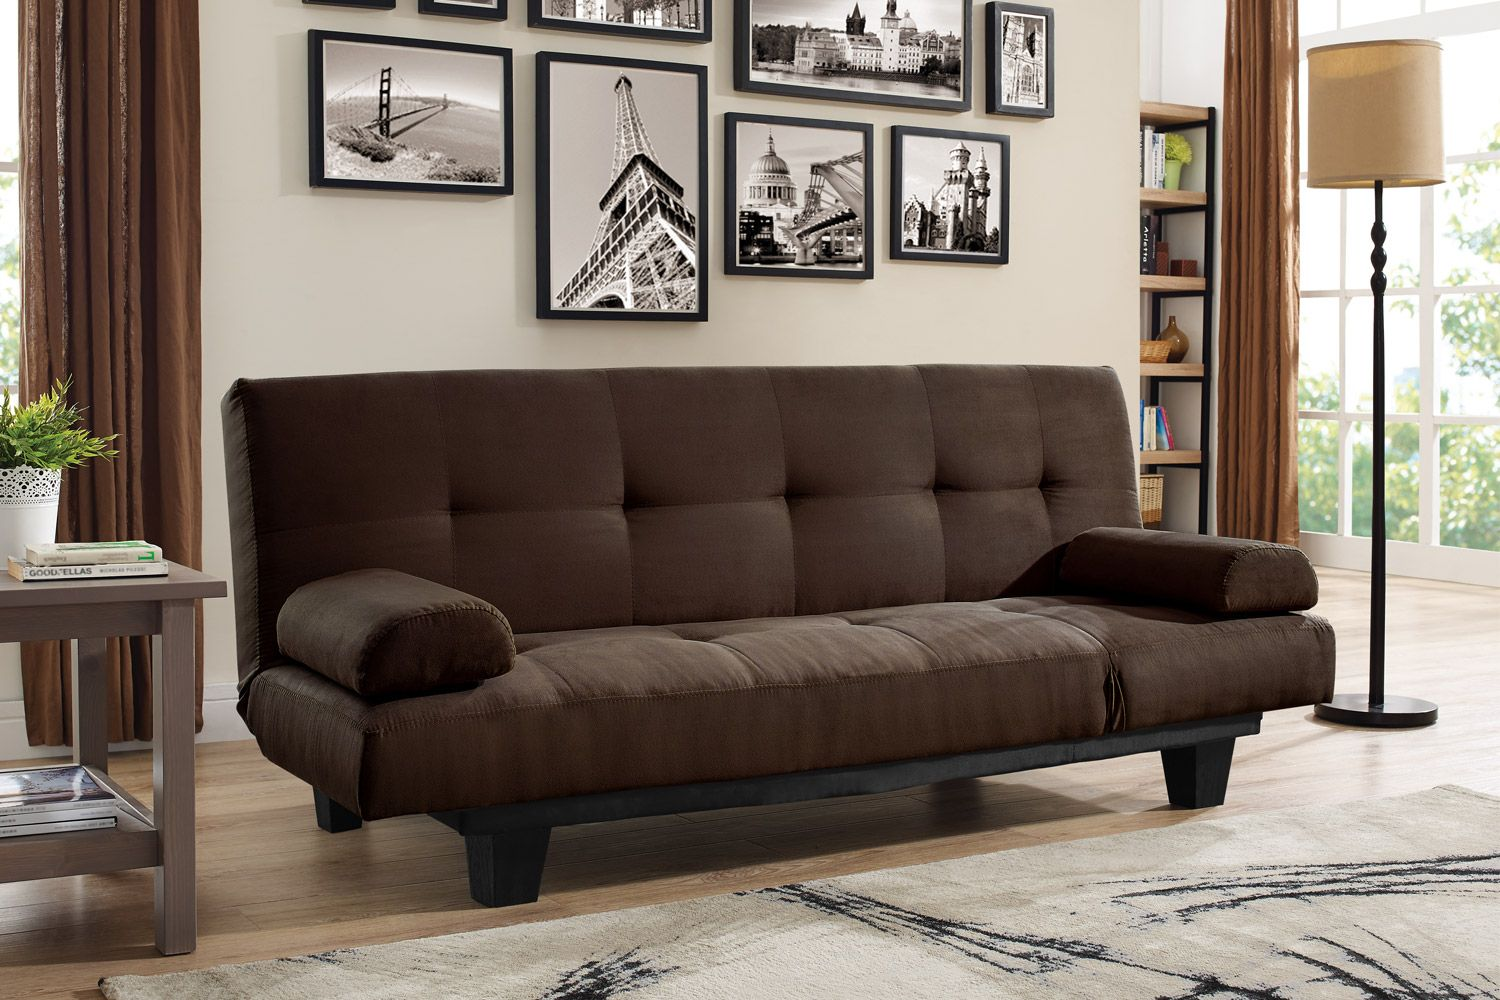 Sofia Sofa Bed Lounger With Images Sofa Bed With Chaise